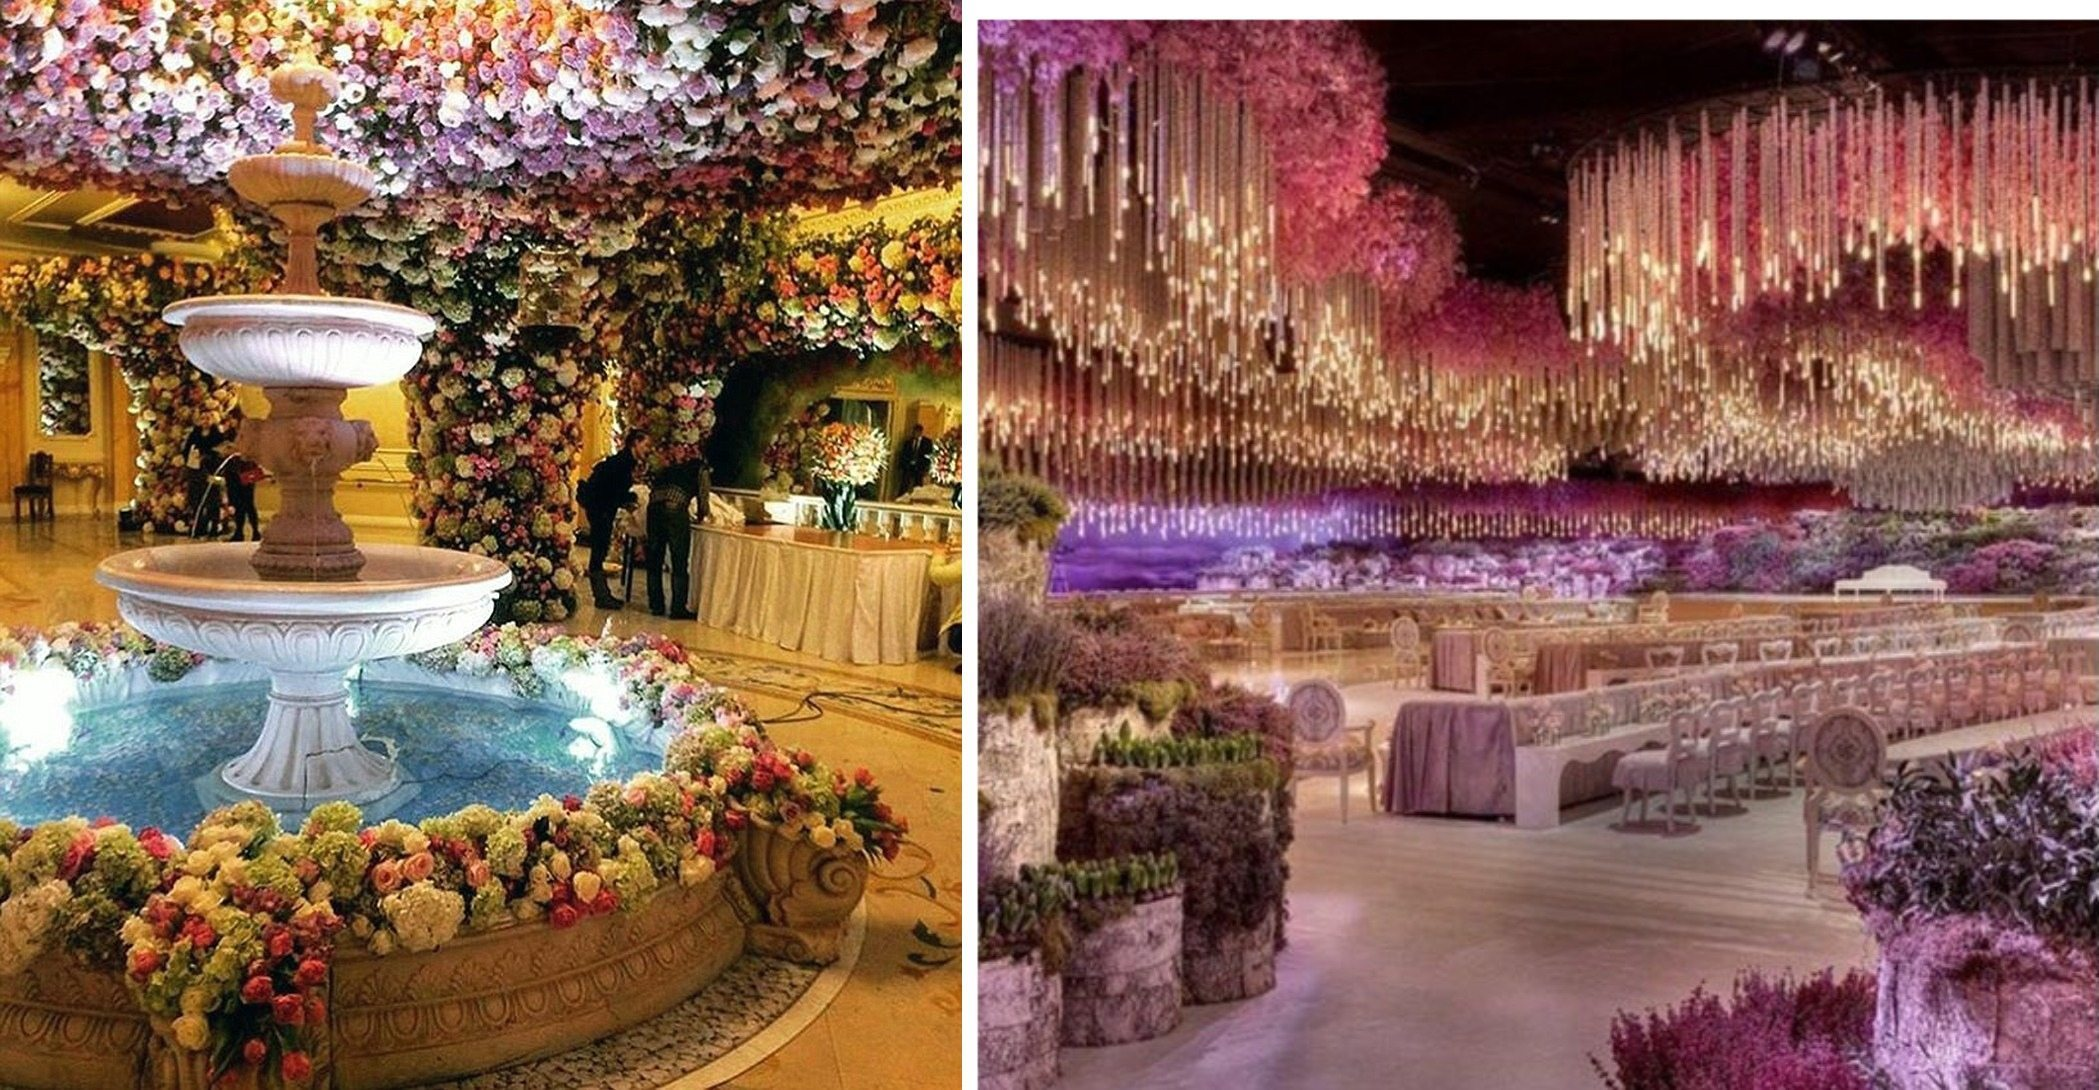 The Banquet Hall Which Is Luxurious On Its Own Was Taken To A New Level Of Extravagance With Flower And Light Decorations Covering Up Entire E